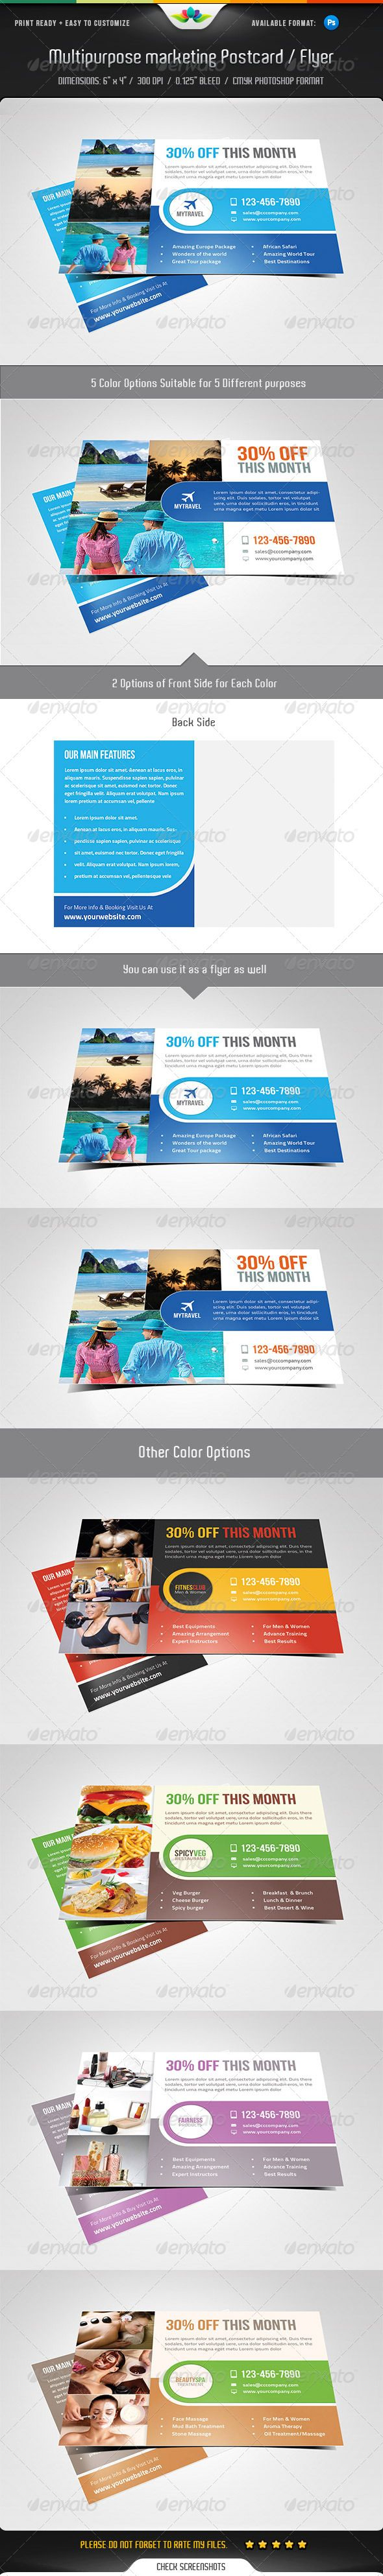 best images about marketing postcards flyers multipurpose marketing postcard flyer template